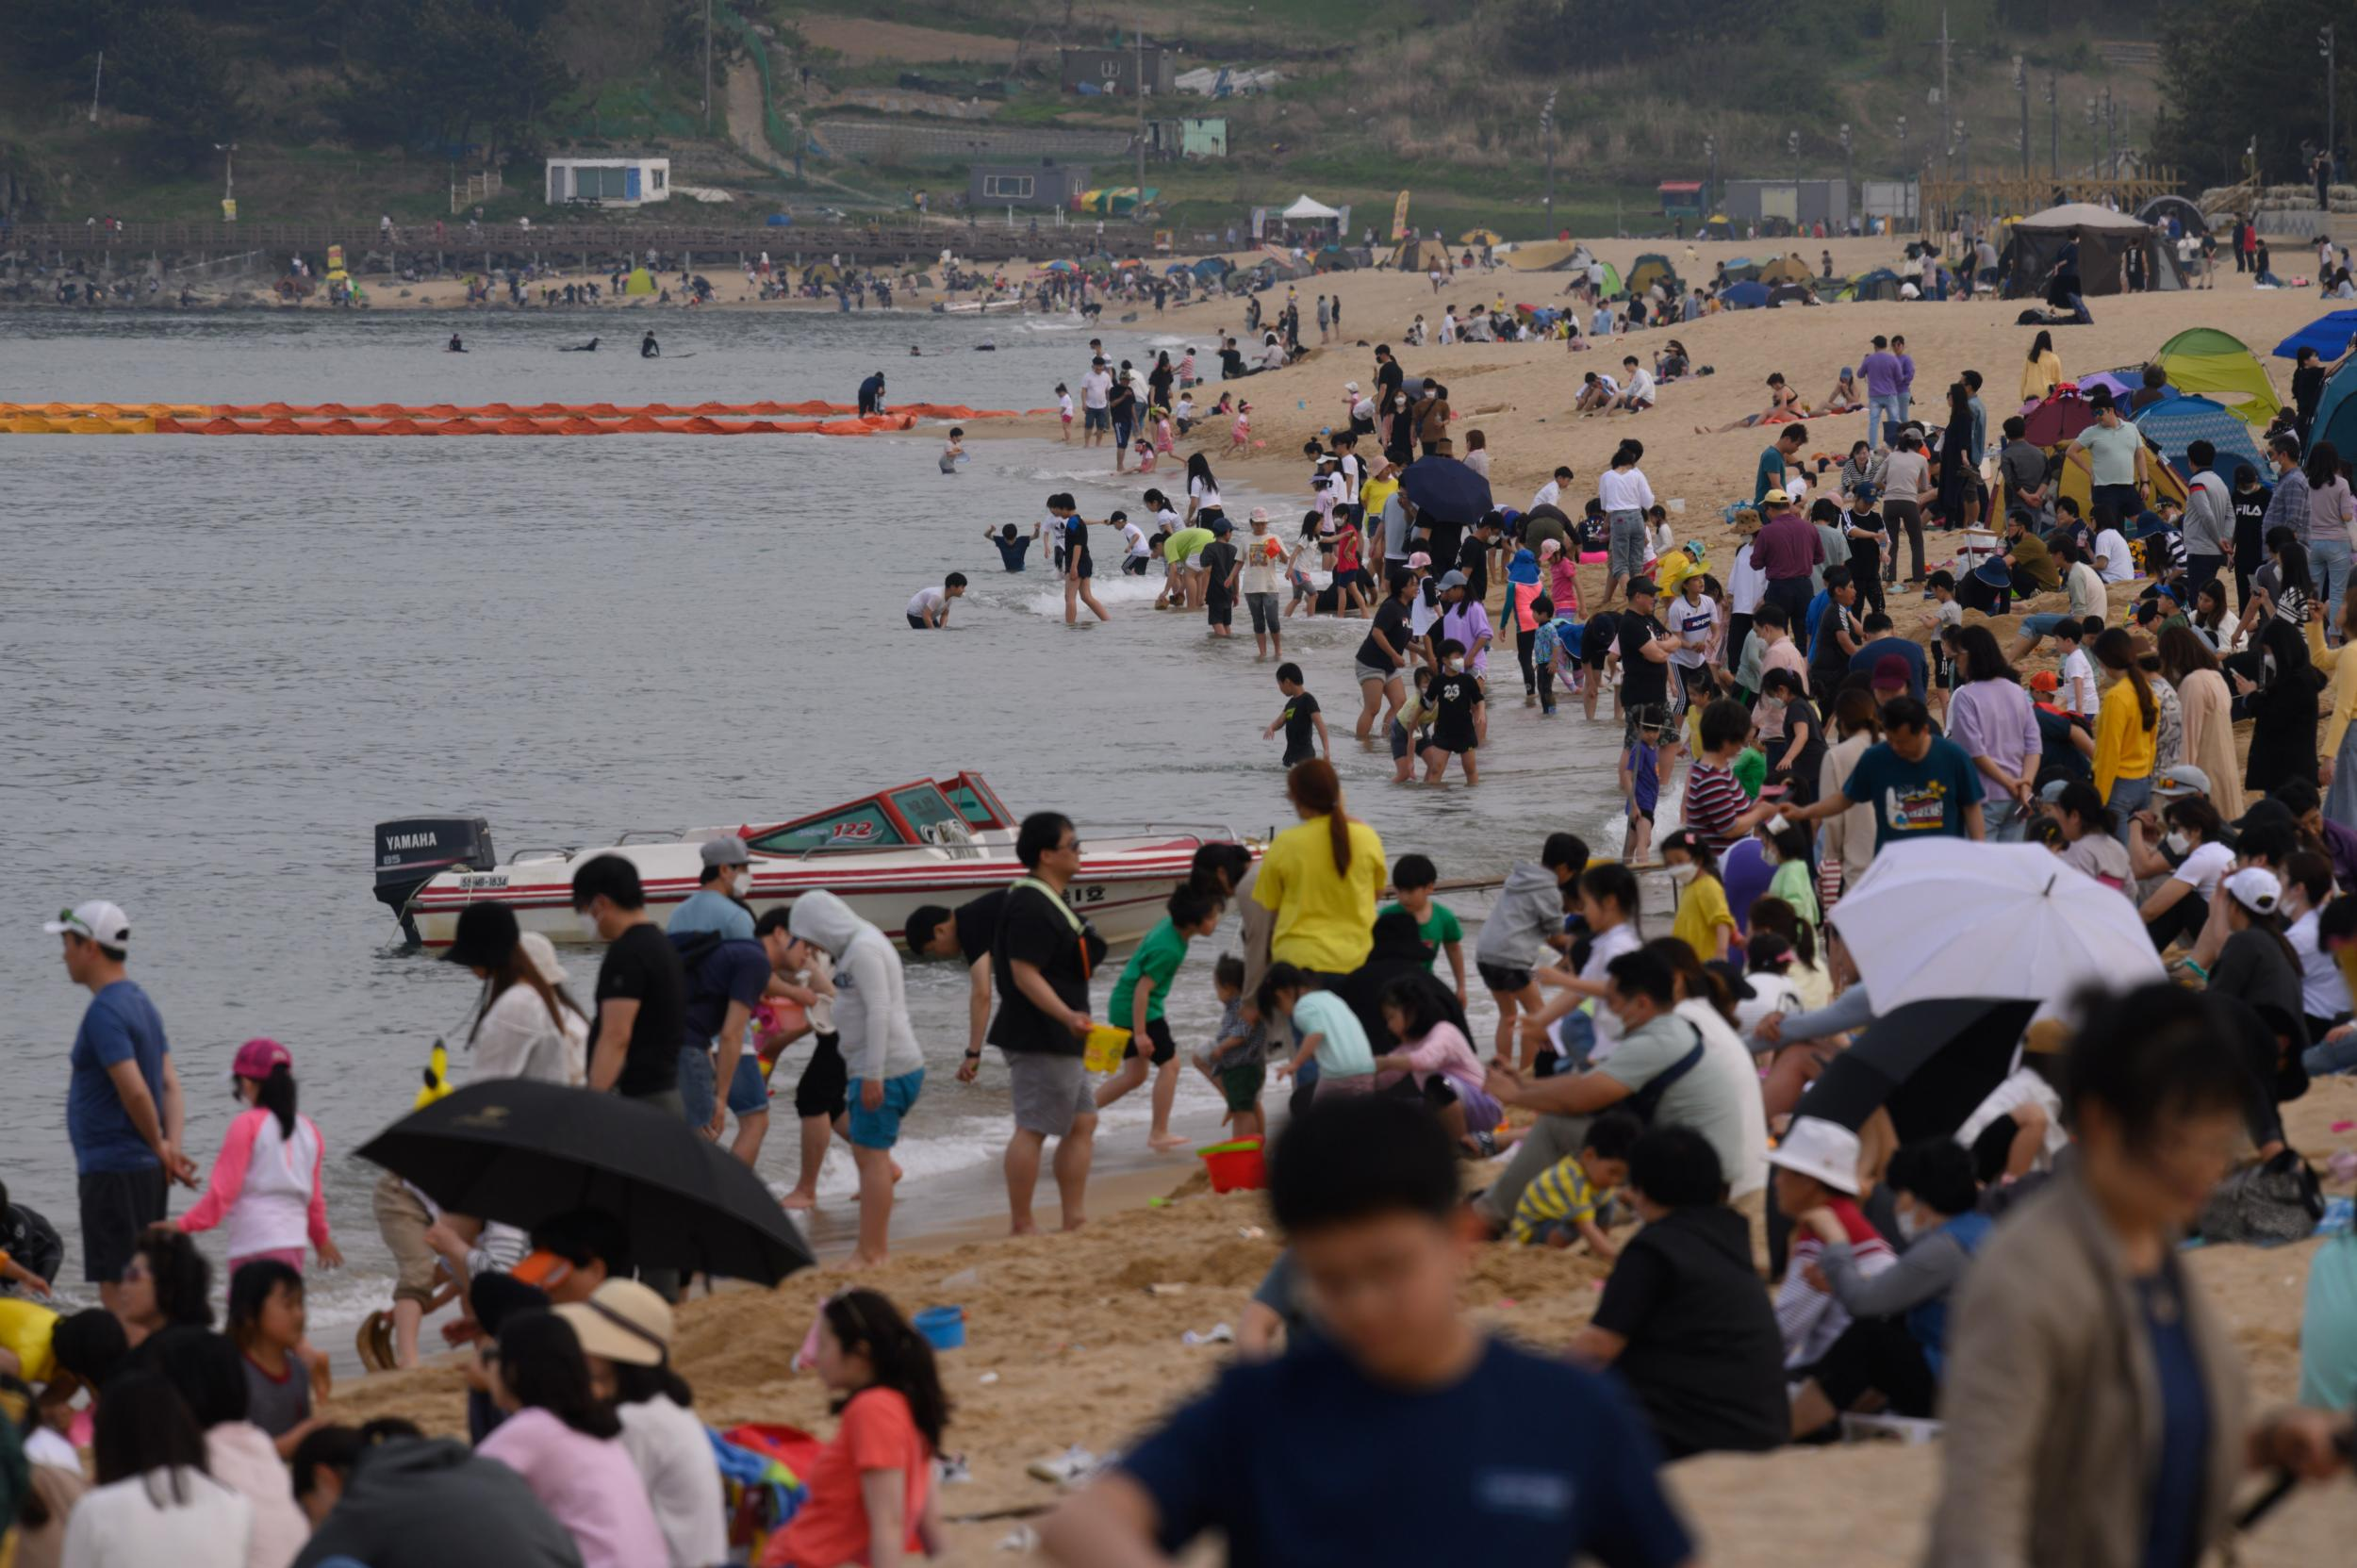 South Korea to relax social distancing rules further as coronavirus outbreak comes under control photo